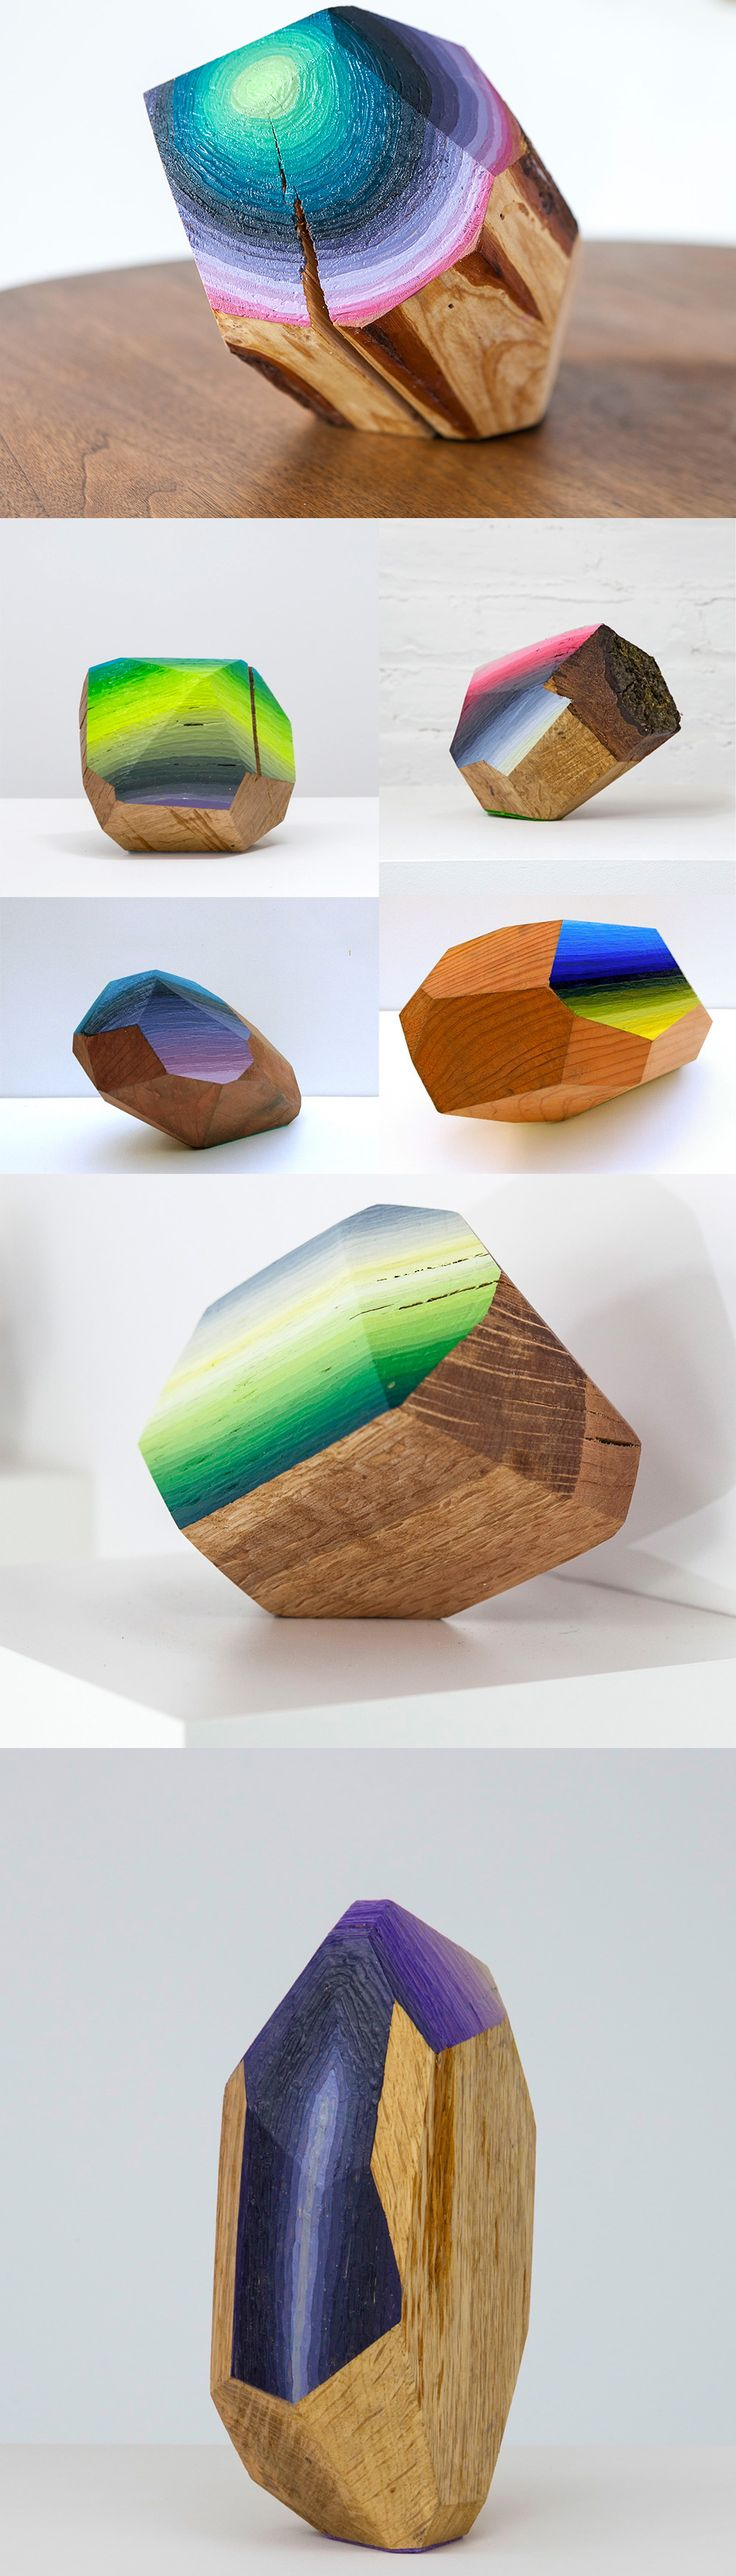 Wood Blocks Carved and Painted into Glimmering Gemlike Objects by Victoria Wagner